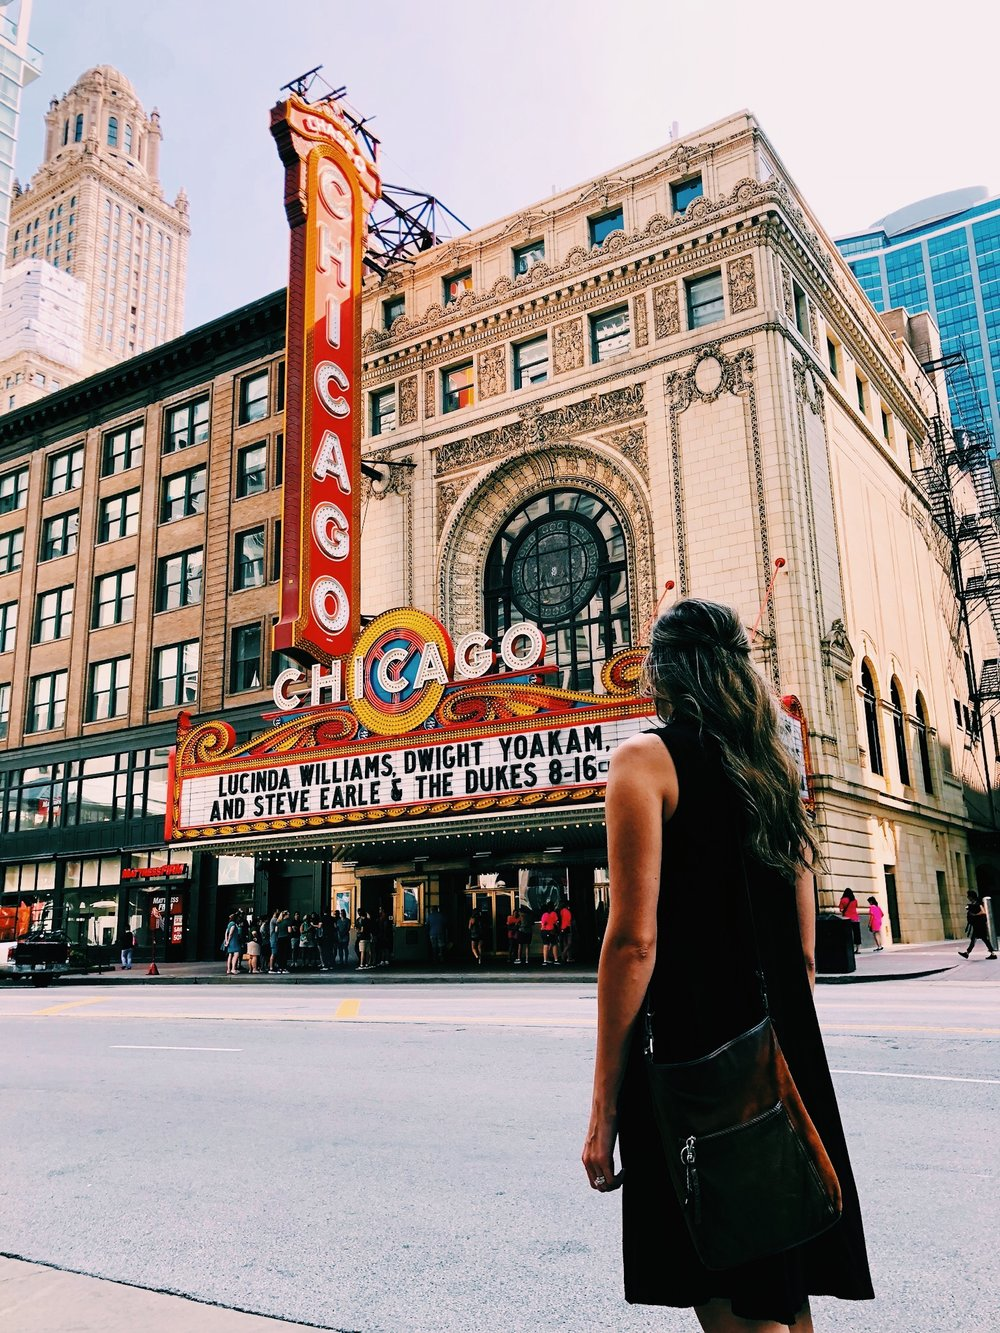 seeing a show at the chicago theater is a bucket list item for me…but the budget didn't make it work this time! oh well, guess we have a reason to go back!